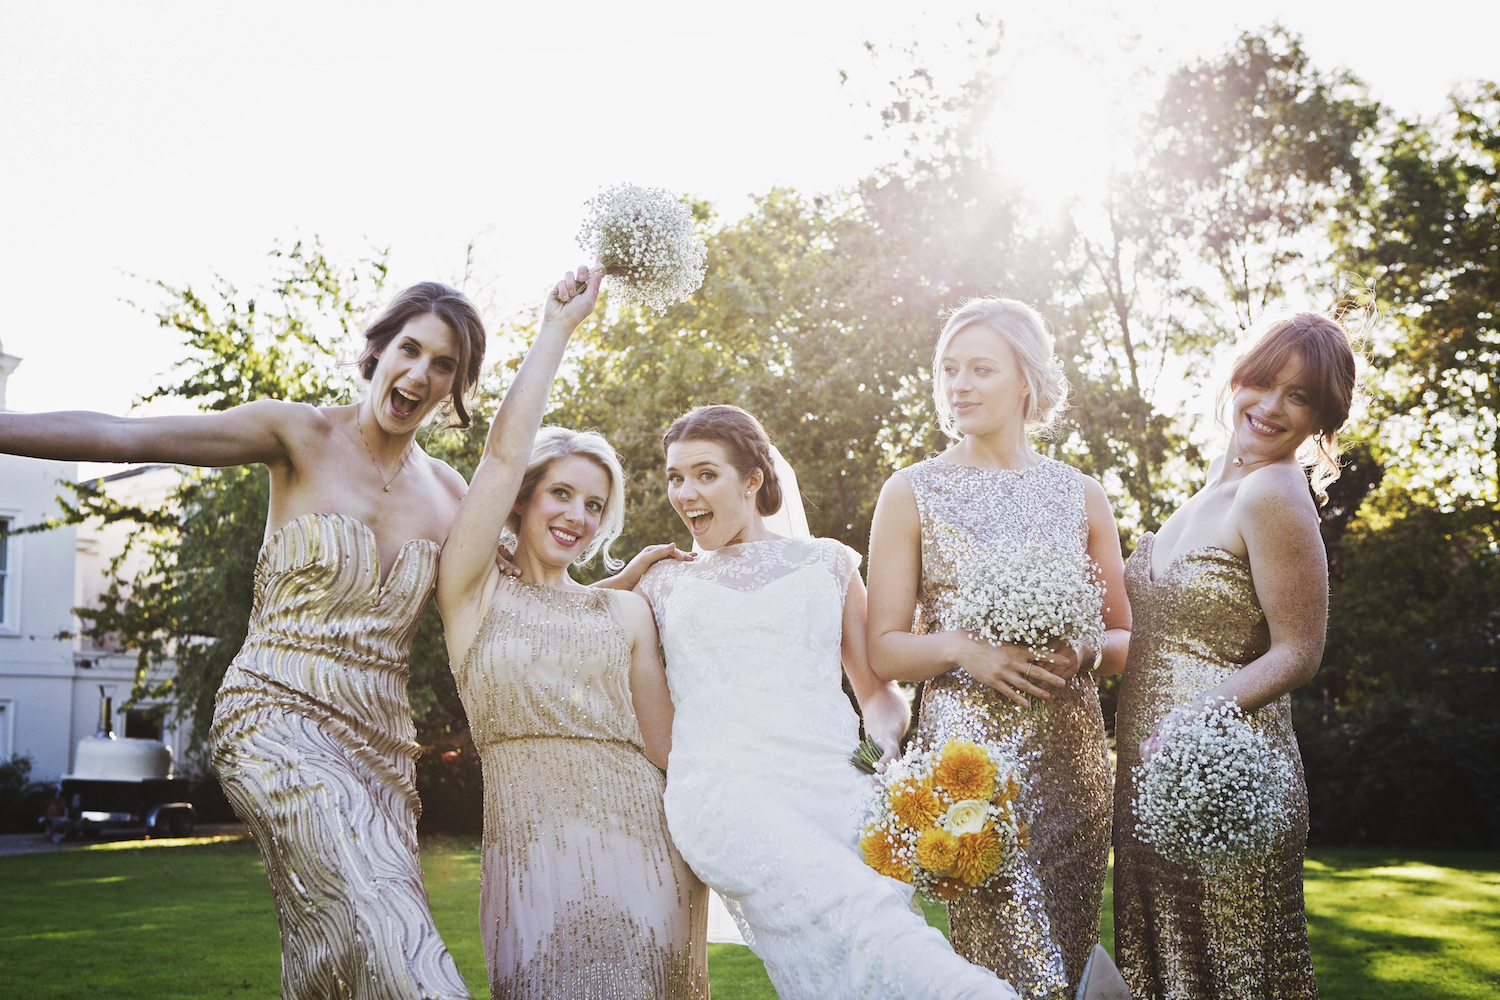 Beautiful bride Claire wore a wedding dress by Halfpenny London